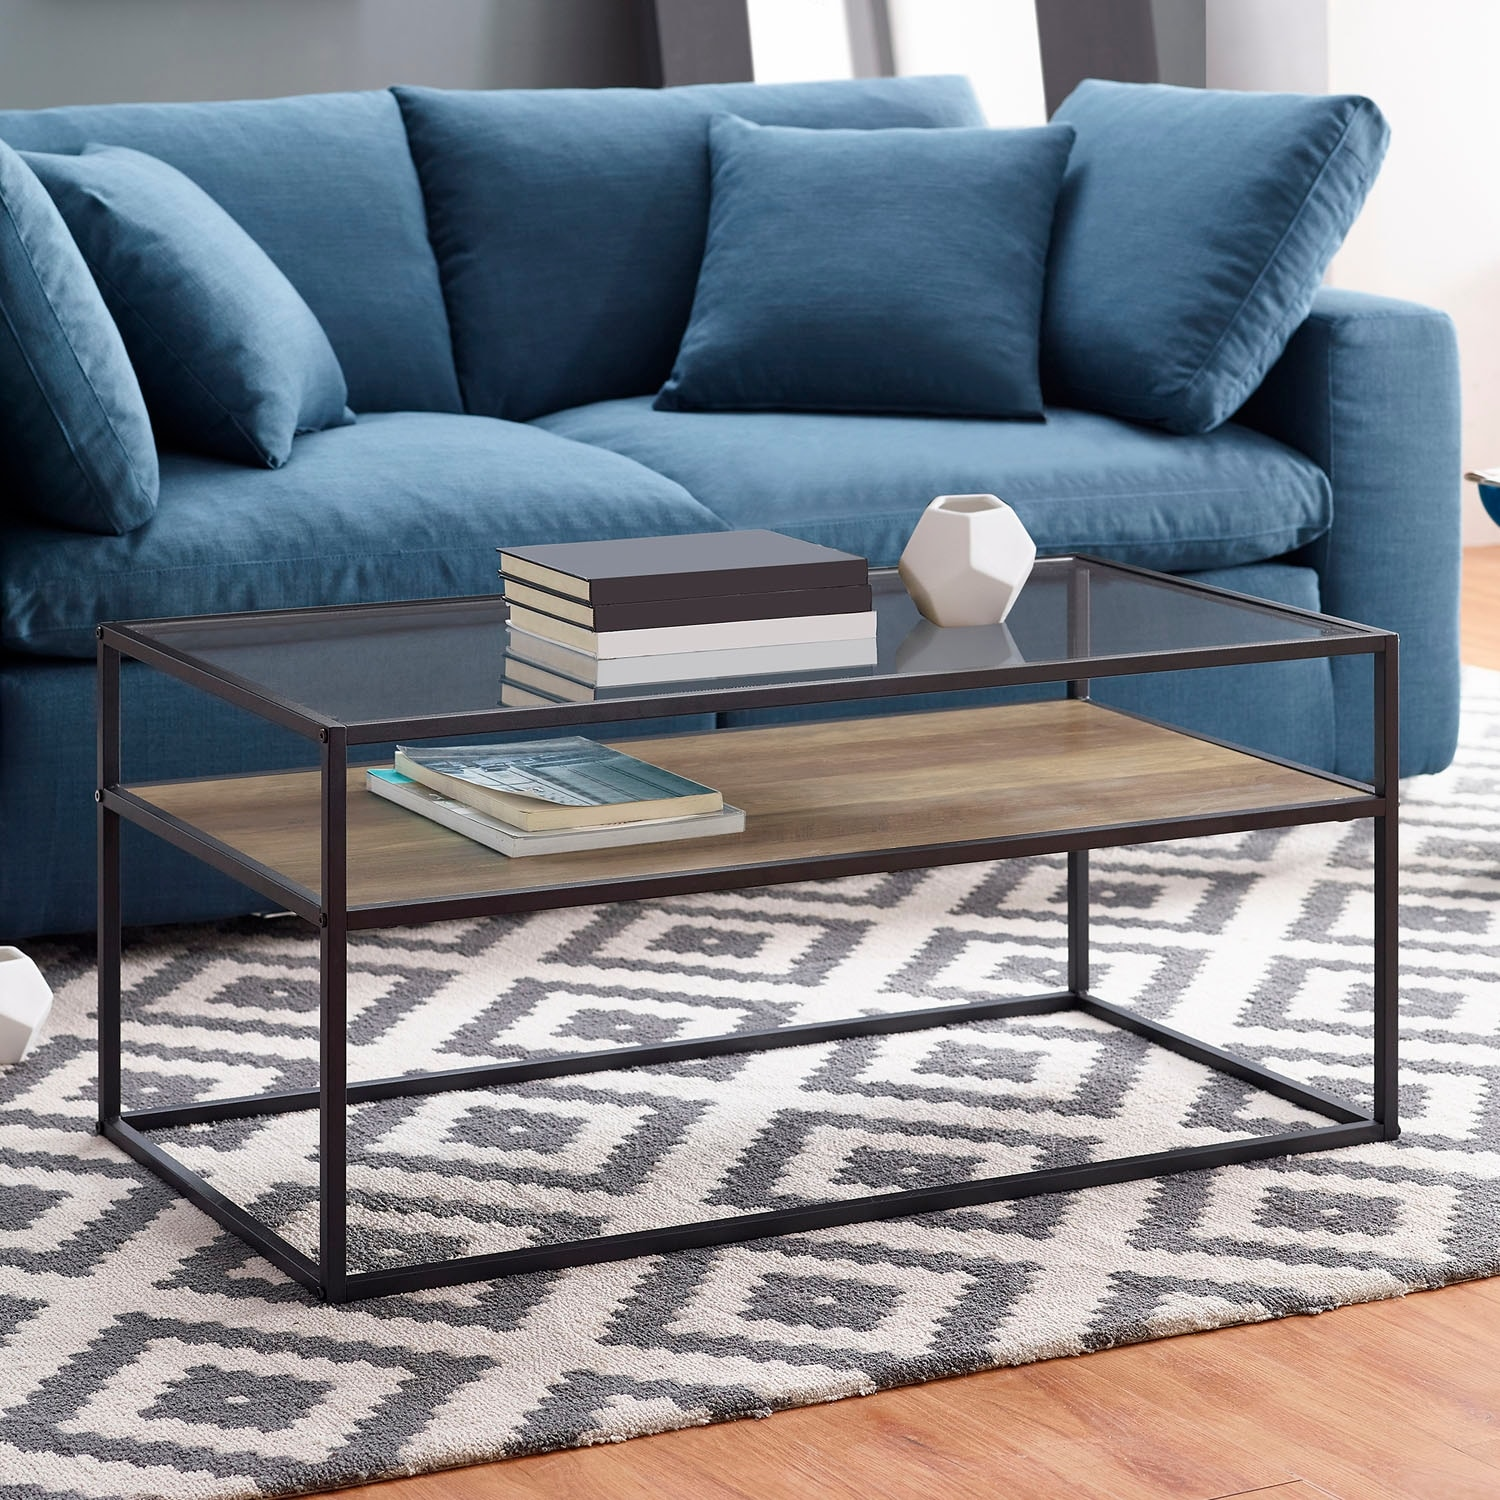 Incredible Offex Modern Reversible Shelf Coffee Table Rustic Oak Stone Gray Ncnpc Chair Design For Home Ncnpcorg